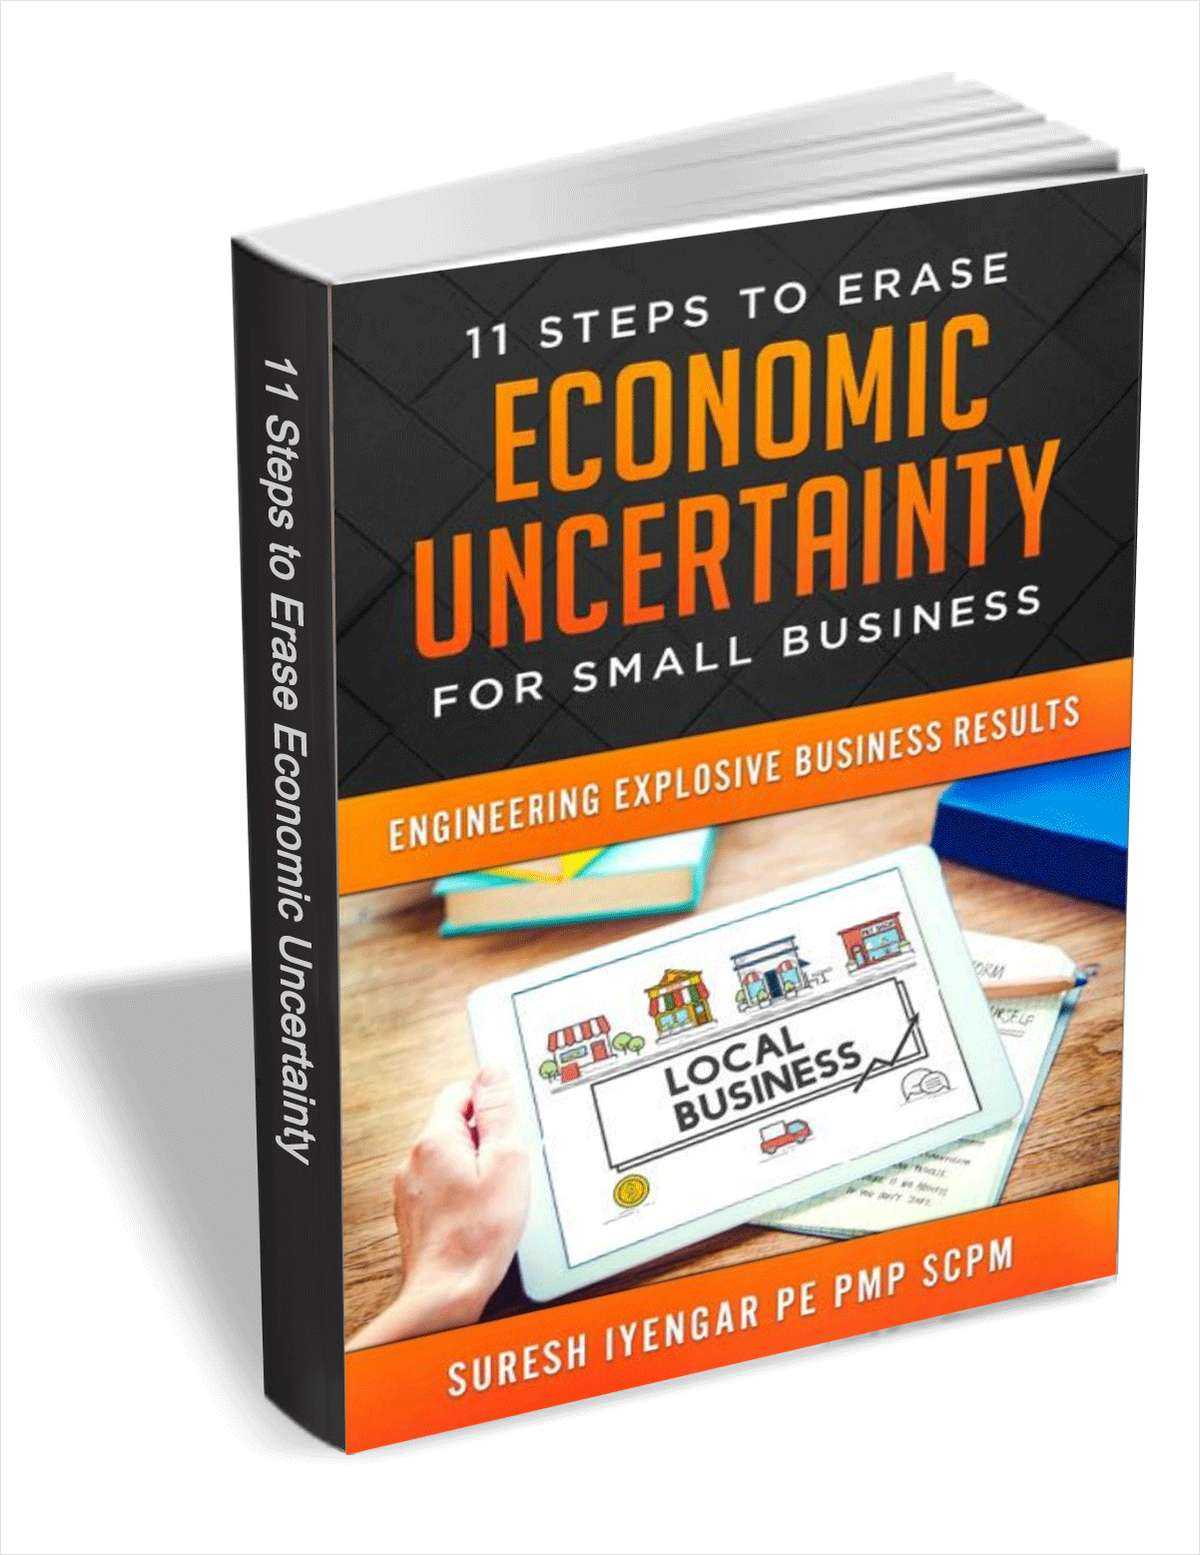 11 Steps to Erase Economic Uncertainty for Small Business